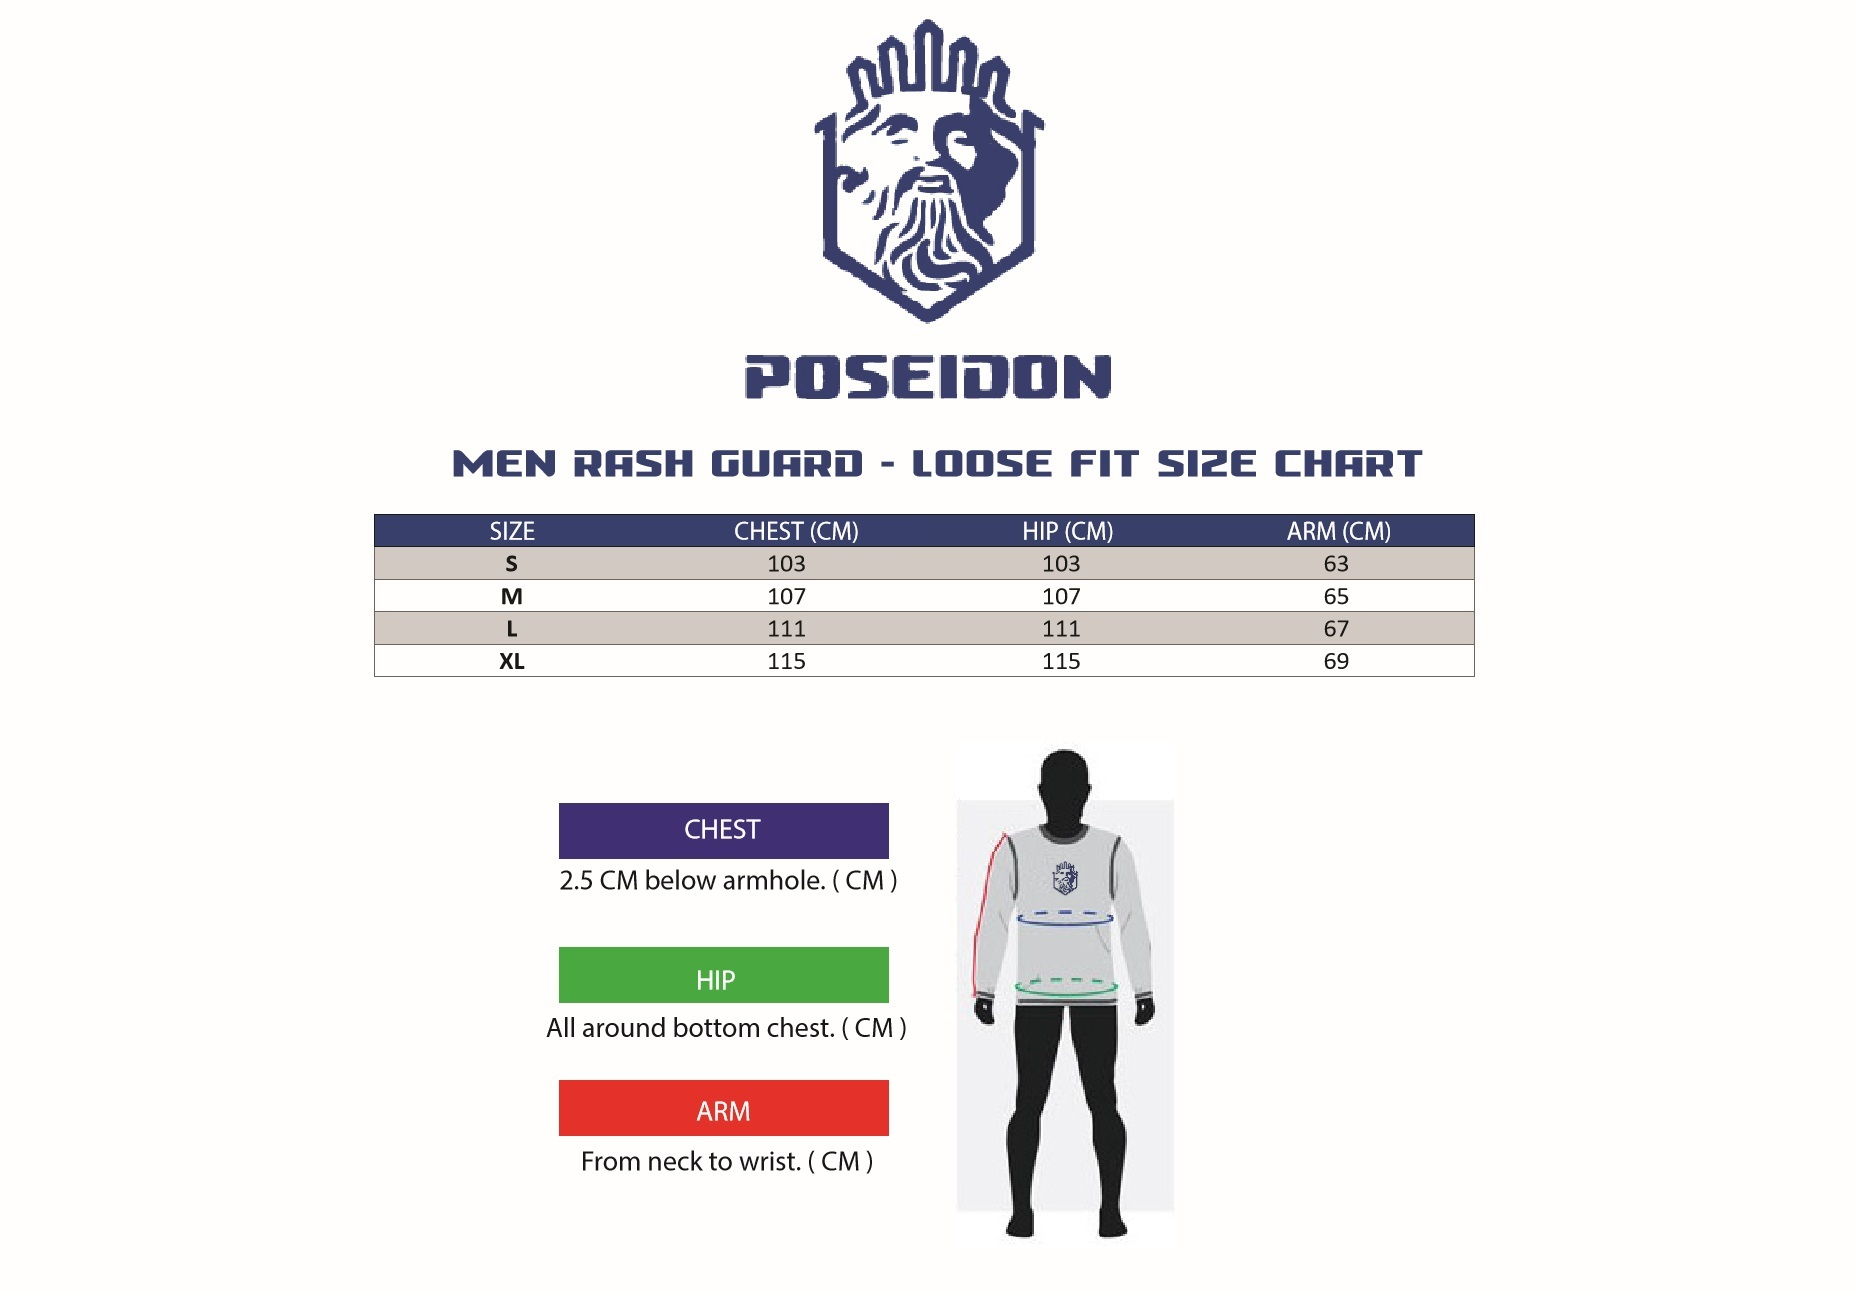 Men Loose Fit Size Chart.jpg